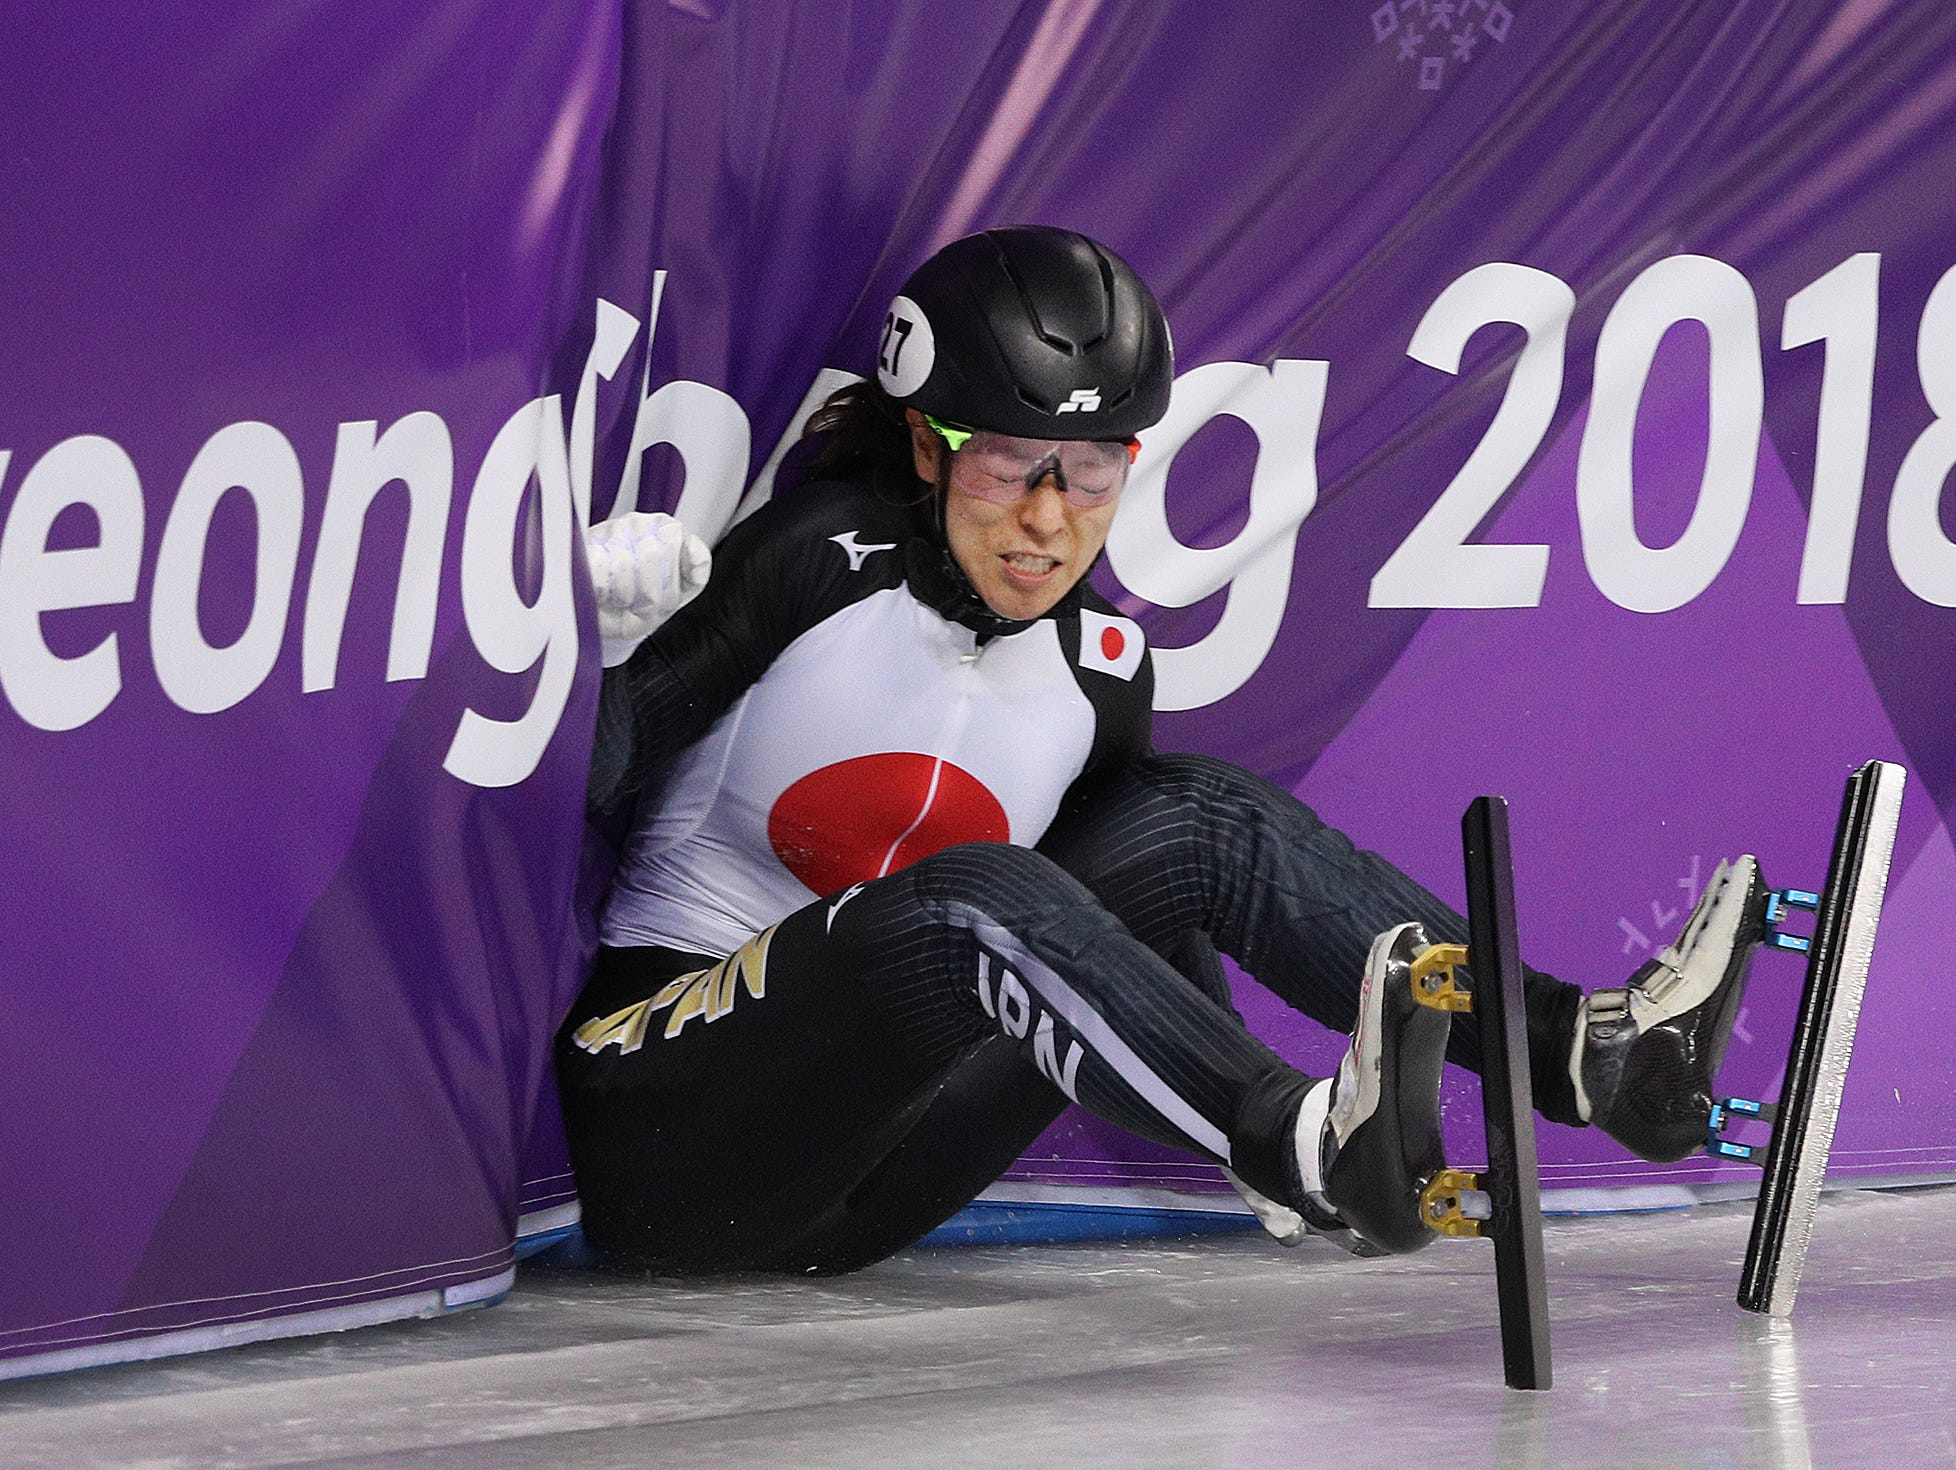 Feb 17, 2018; Pyeongchang, South Korea; Japan's Sumire Kikuchi (JPN) slams into the wall after falling in the Ladies' 1,500m short track speed skating during the Pyeongchang 2018 Olympic Winter Games at Gangneung Ice Arena. Mandatory Credit: Matt Kryger-USA TODAY Sports